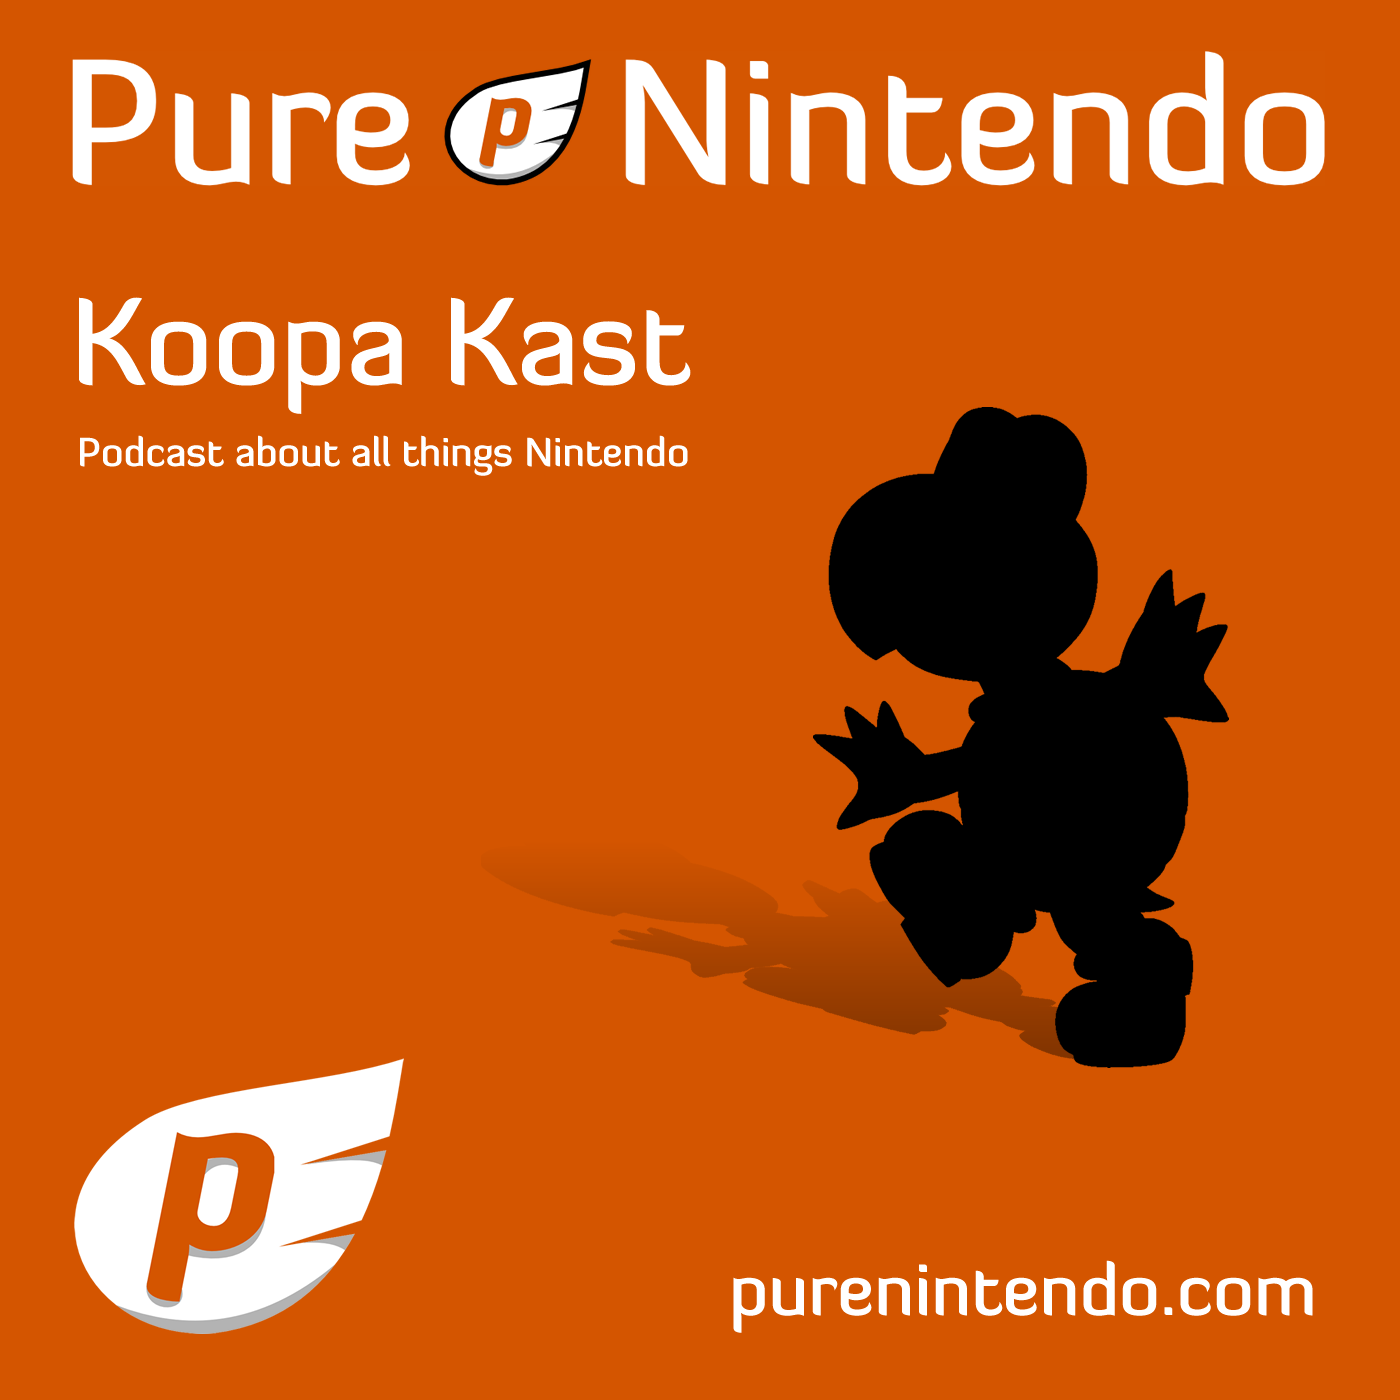 Koopa Kast #47 at 8:30PM EST Tonight